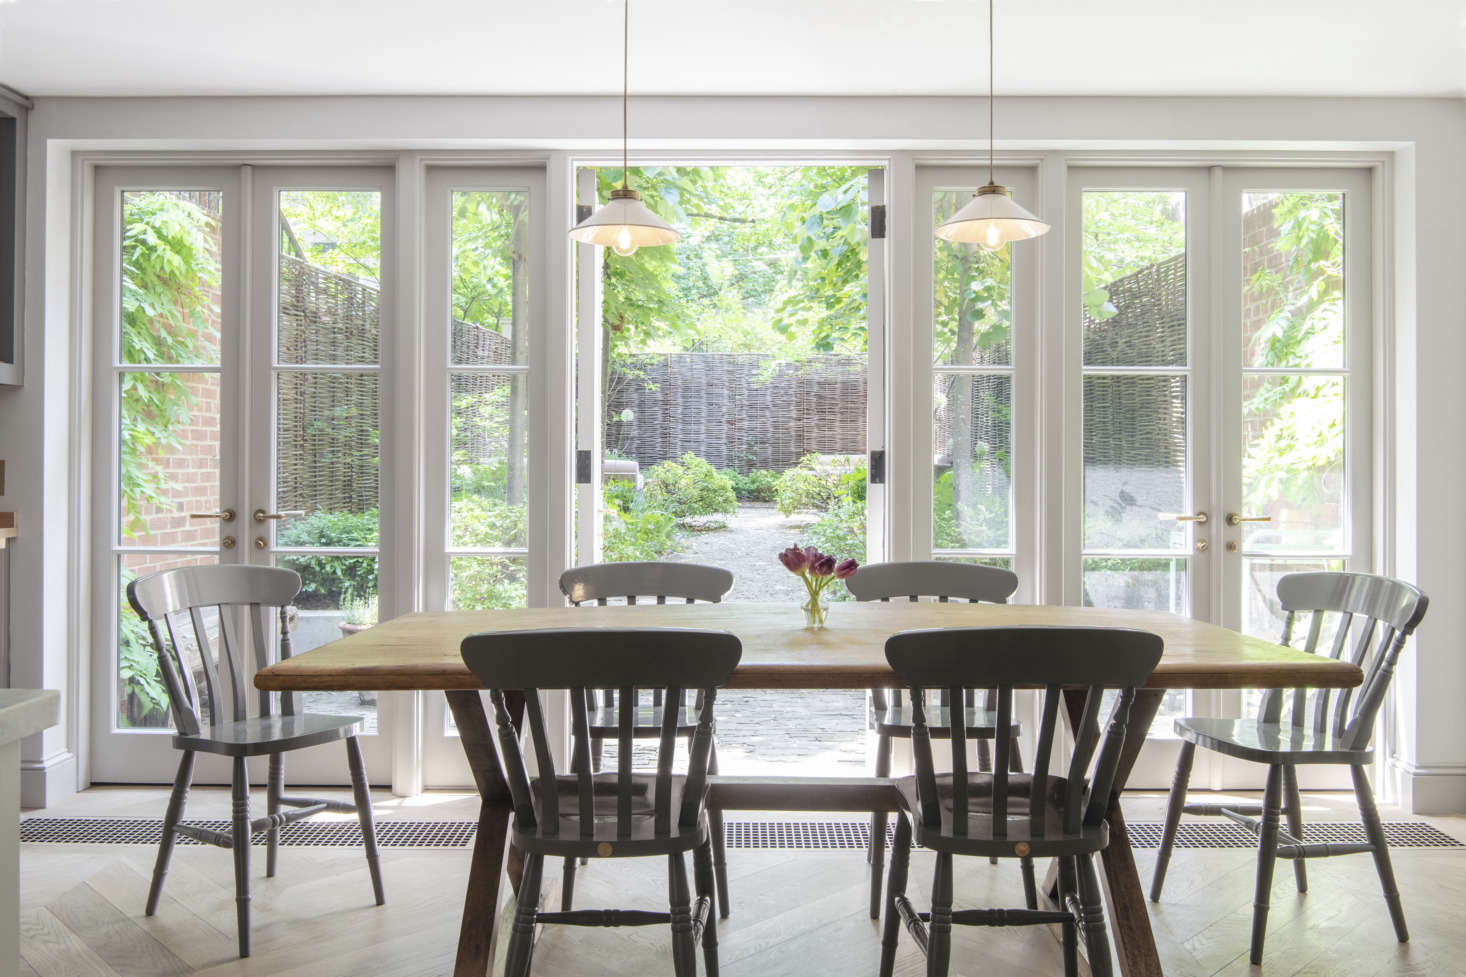 The owners decided to keep the kitchen in its original location because they like the link to the garden—&#8